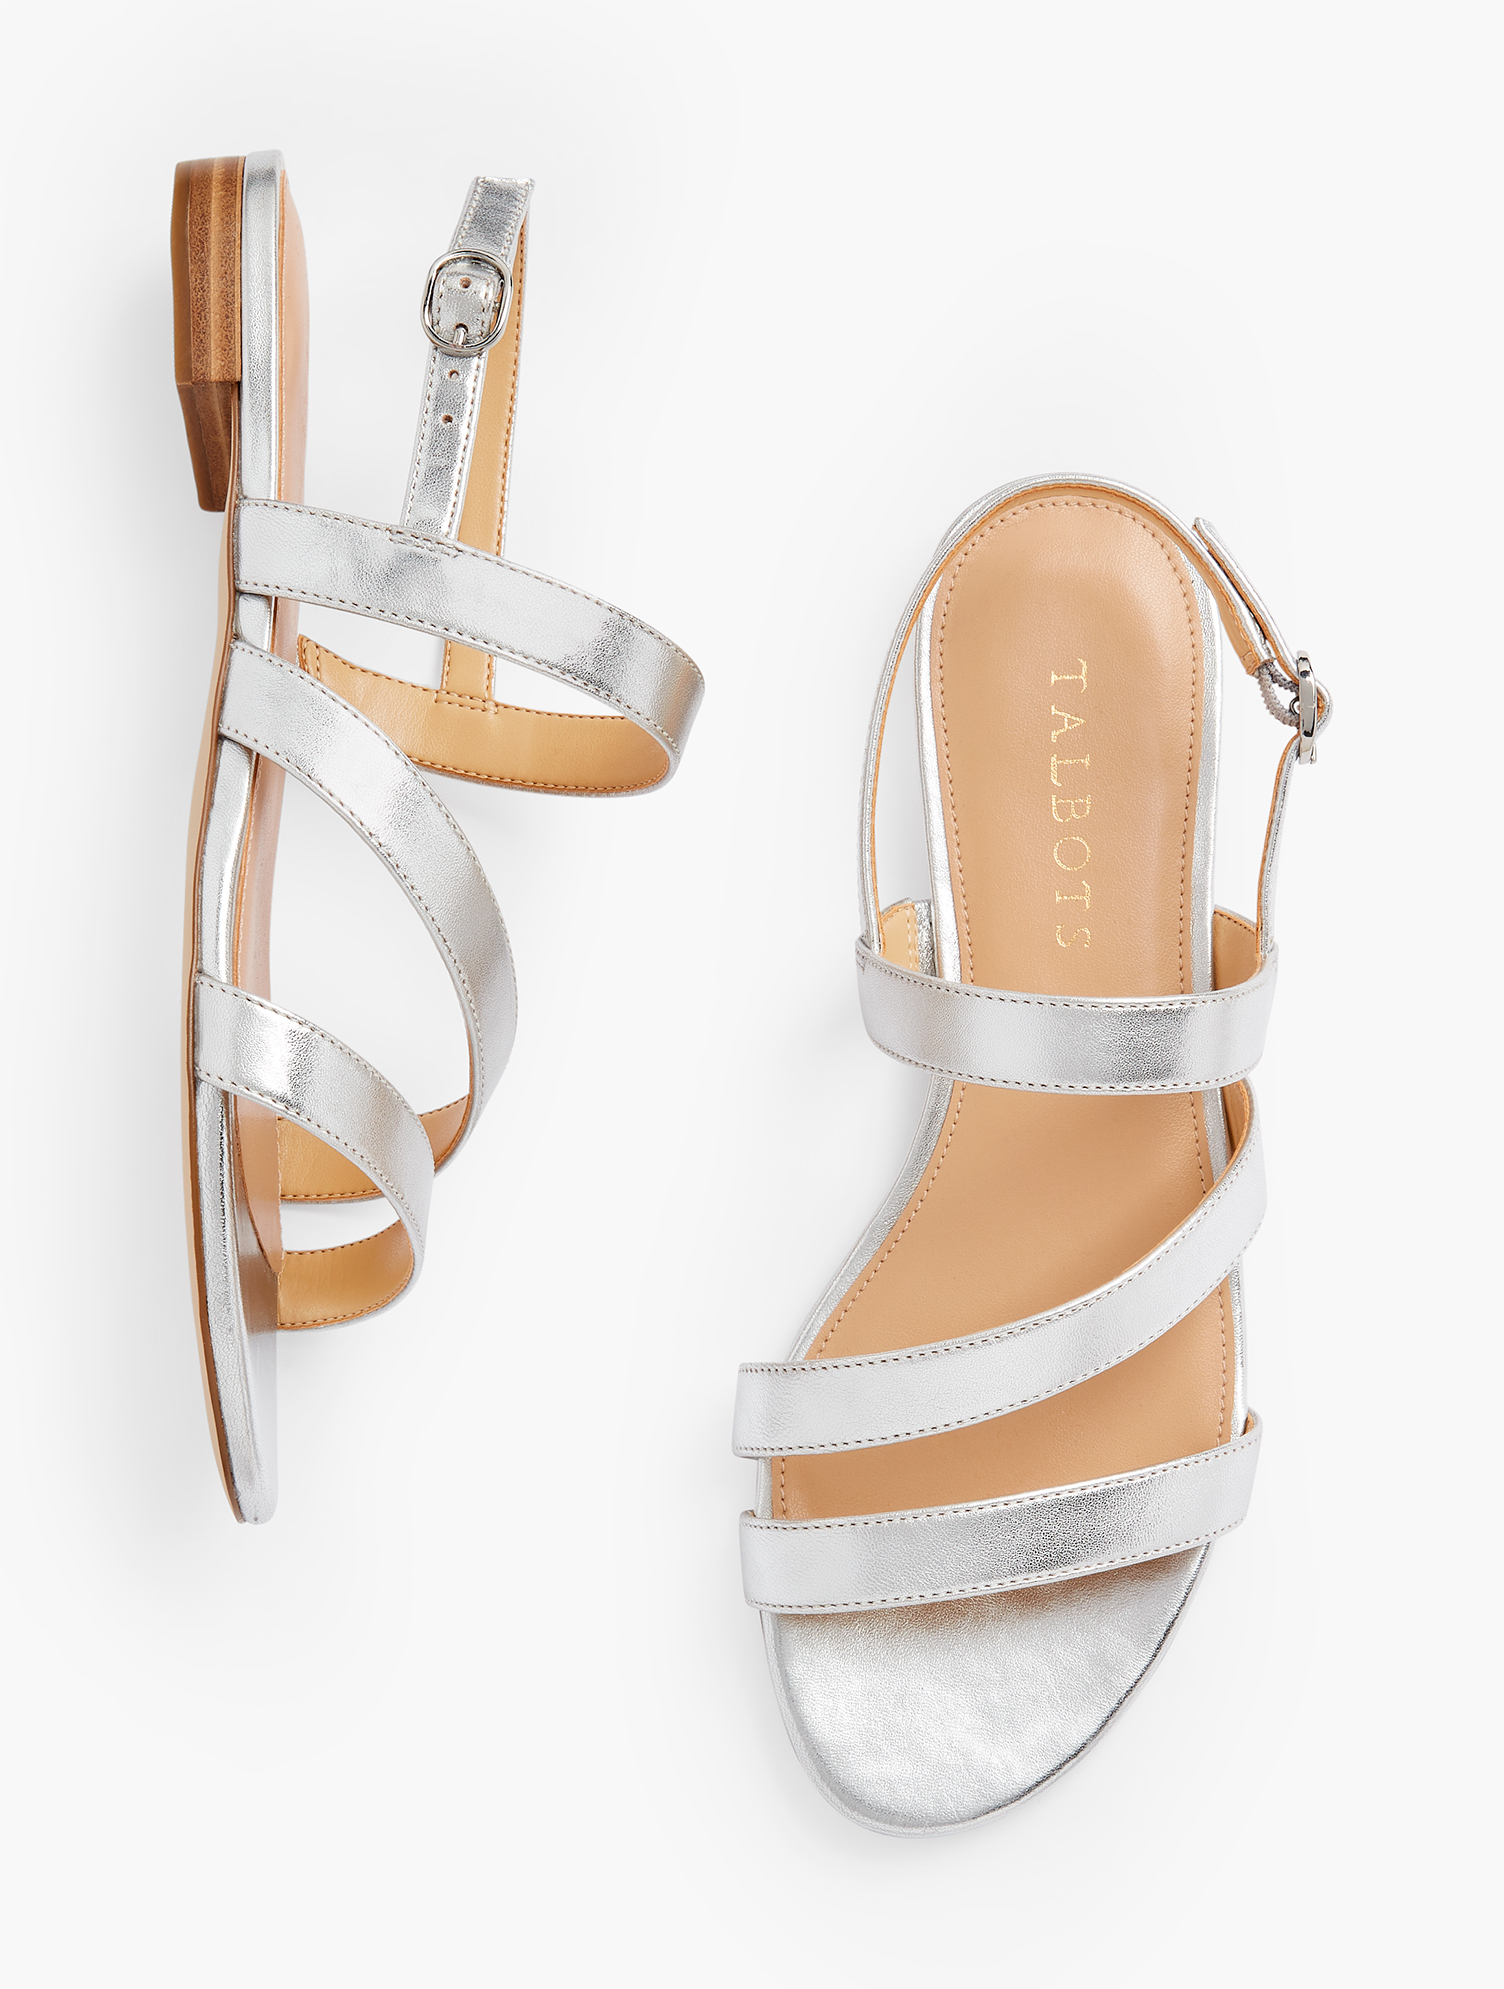 Easy elegance. Our Keri multi-strap sandals were made to be worn dressy or casual. Features 1/2 inches heelFlexible Non Skid OutsoleShiny Nickle Hardware3Mm Memory Foam FootbedImported Material: 100% Leather Keri Multi Strap Sandals - Metallic - Silver - 11M Talbots